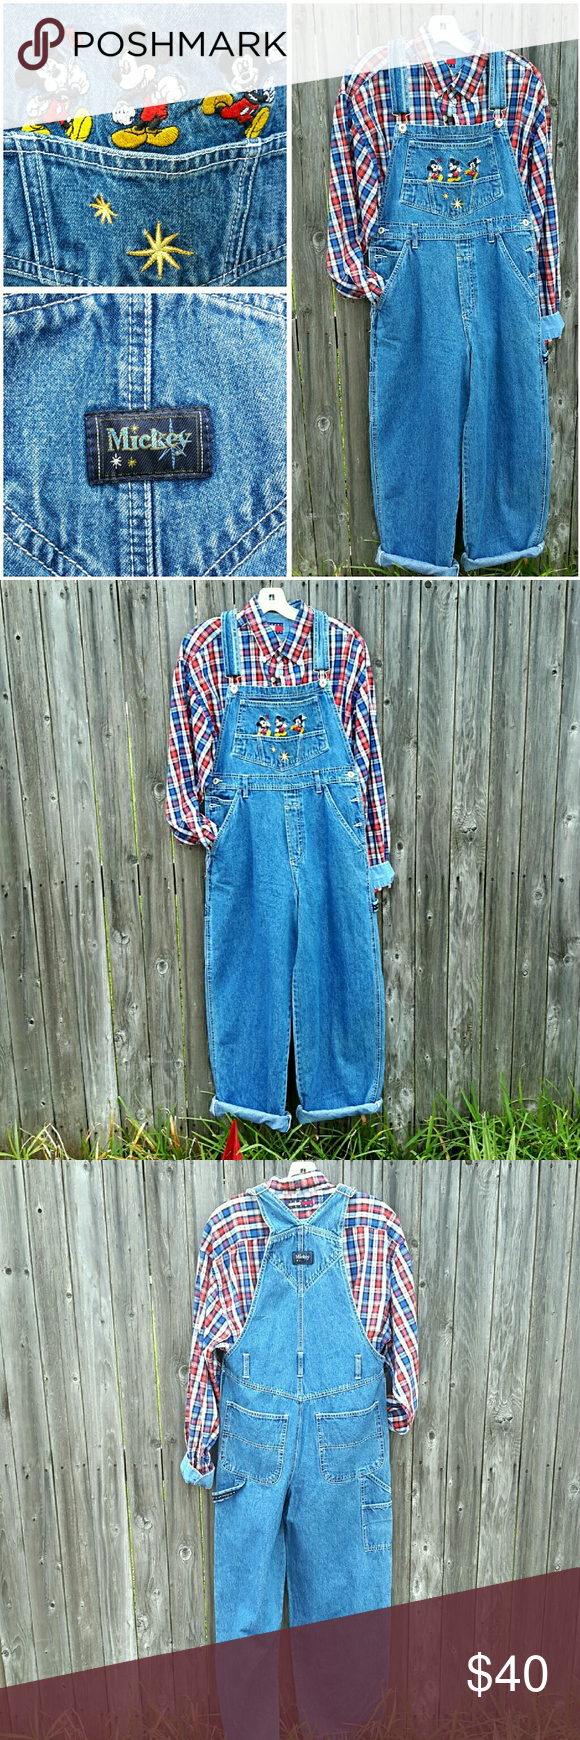 """Vintage MICKEY MOUSE Denim Overalls Disney Mickey Oh My! LOVE these super Cute Mickey Mouse Overalls!  They are prefect for all you Mickey  Lover's.  They are from Disney and ate in good condition with no rips or stains.  They are unlimited.  Lenght : 59"""" Hips:36"""" Size M/L Disney  Jeans Overalls"""